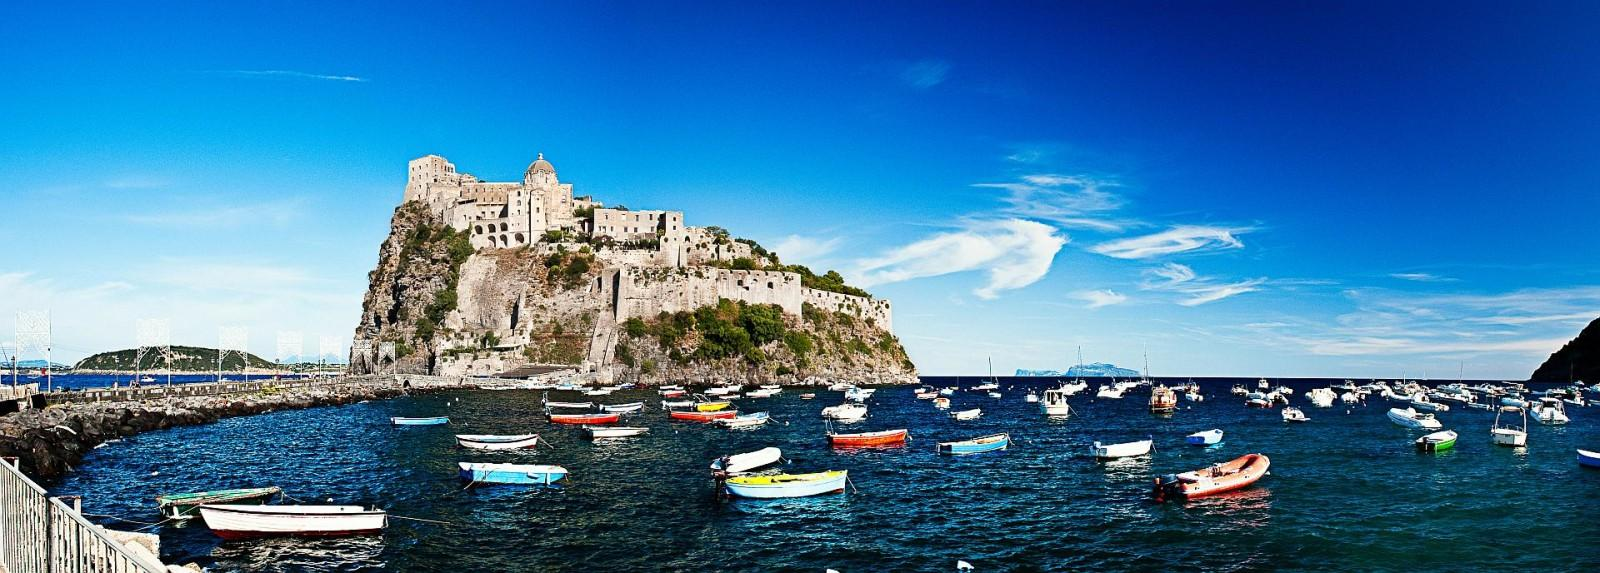 Little Ischia island